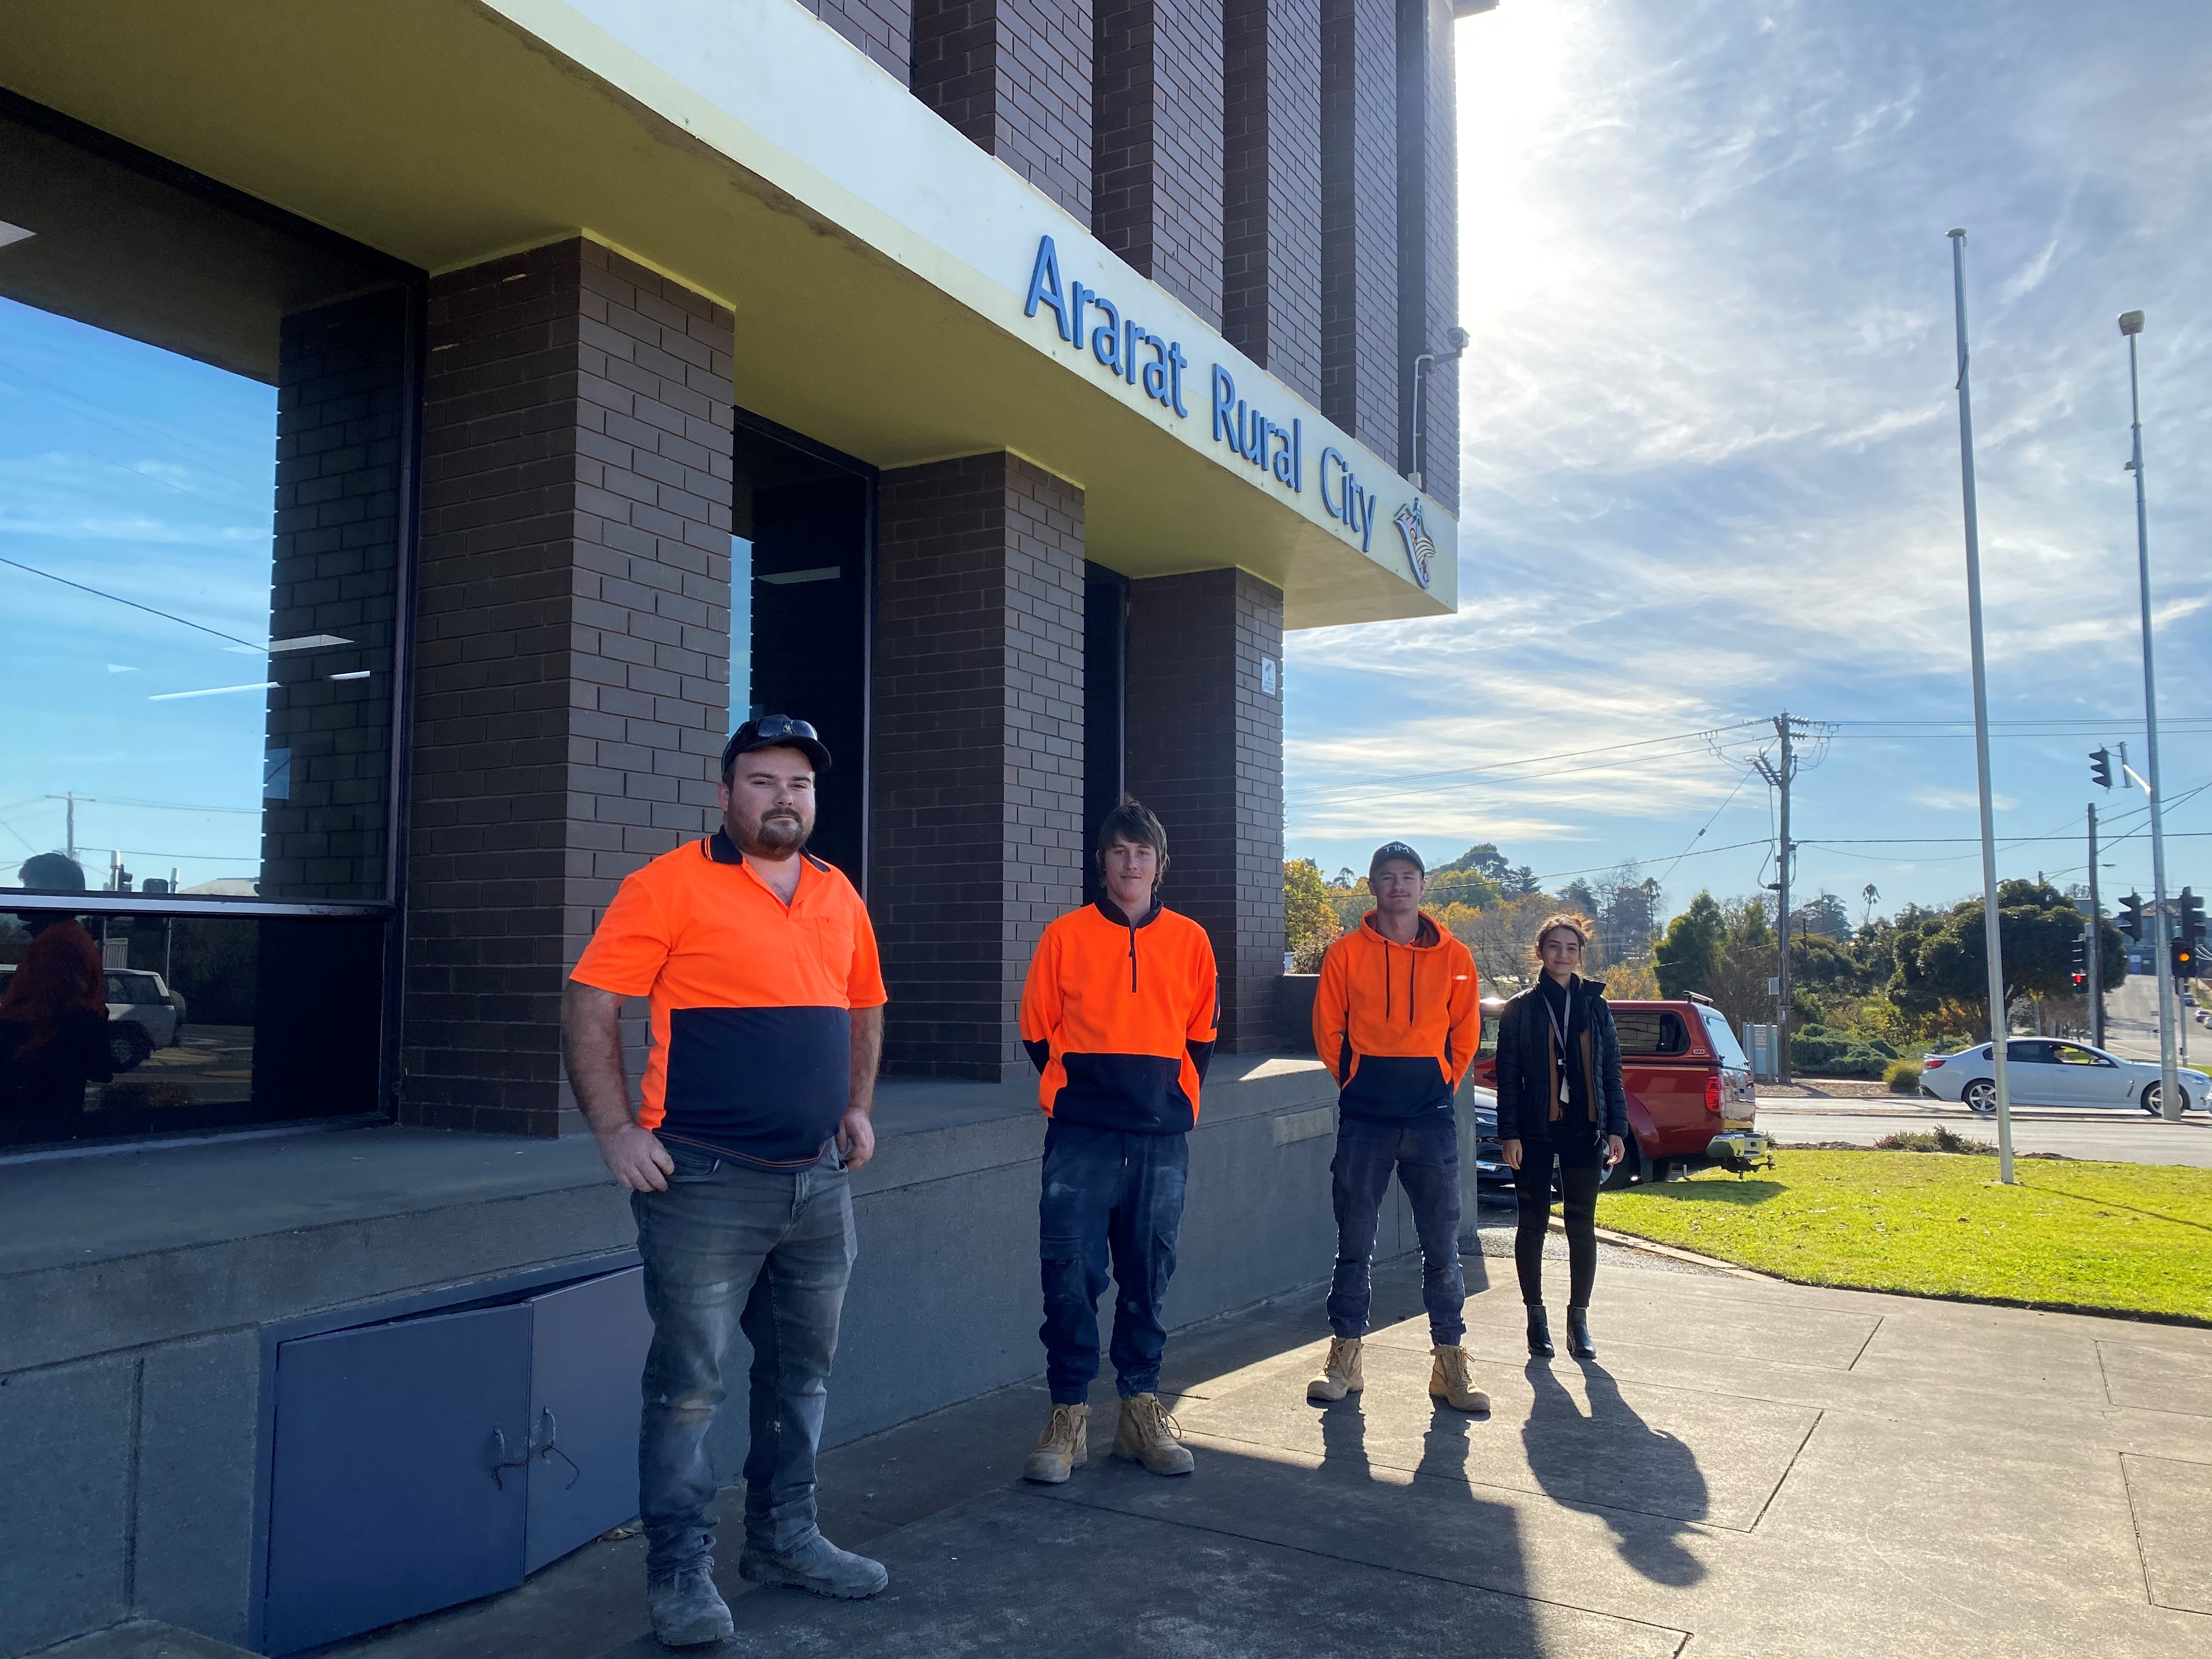 Council employs 20 new staff under State Government program